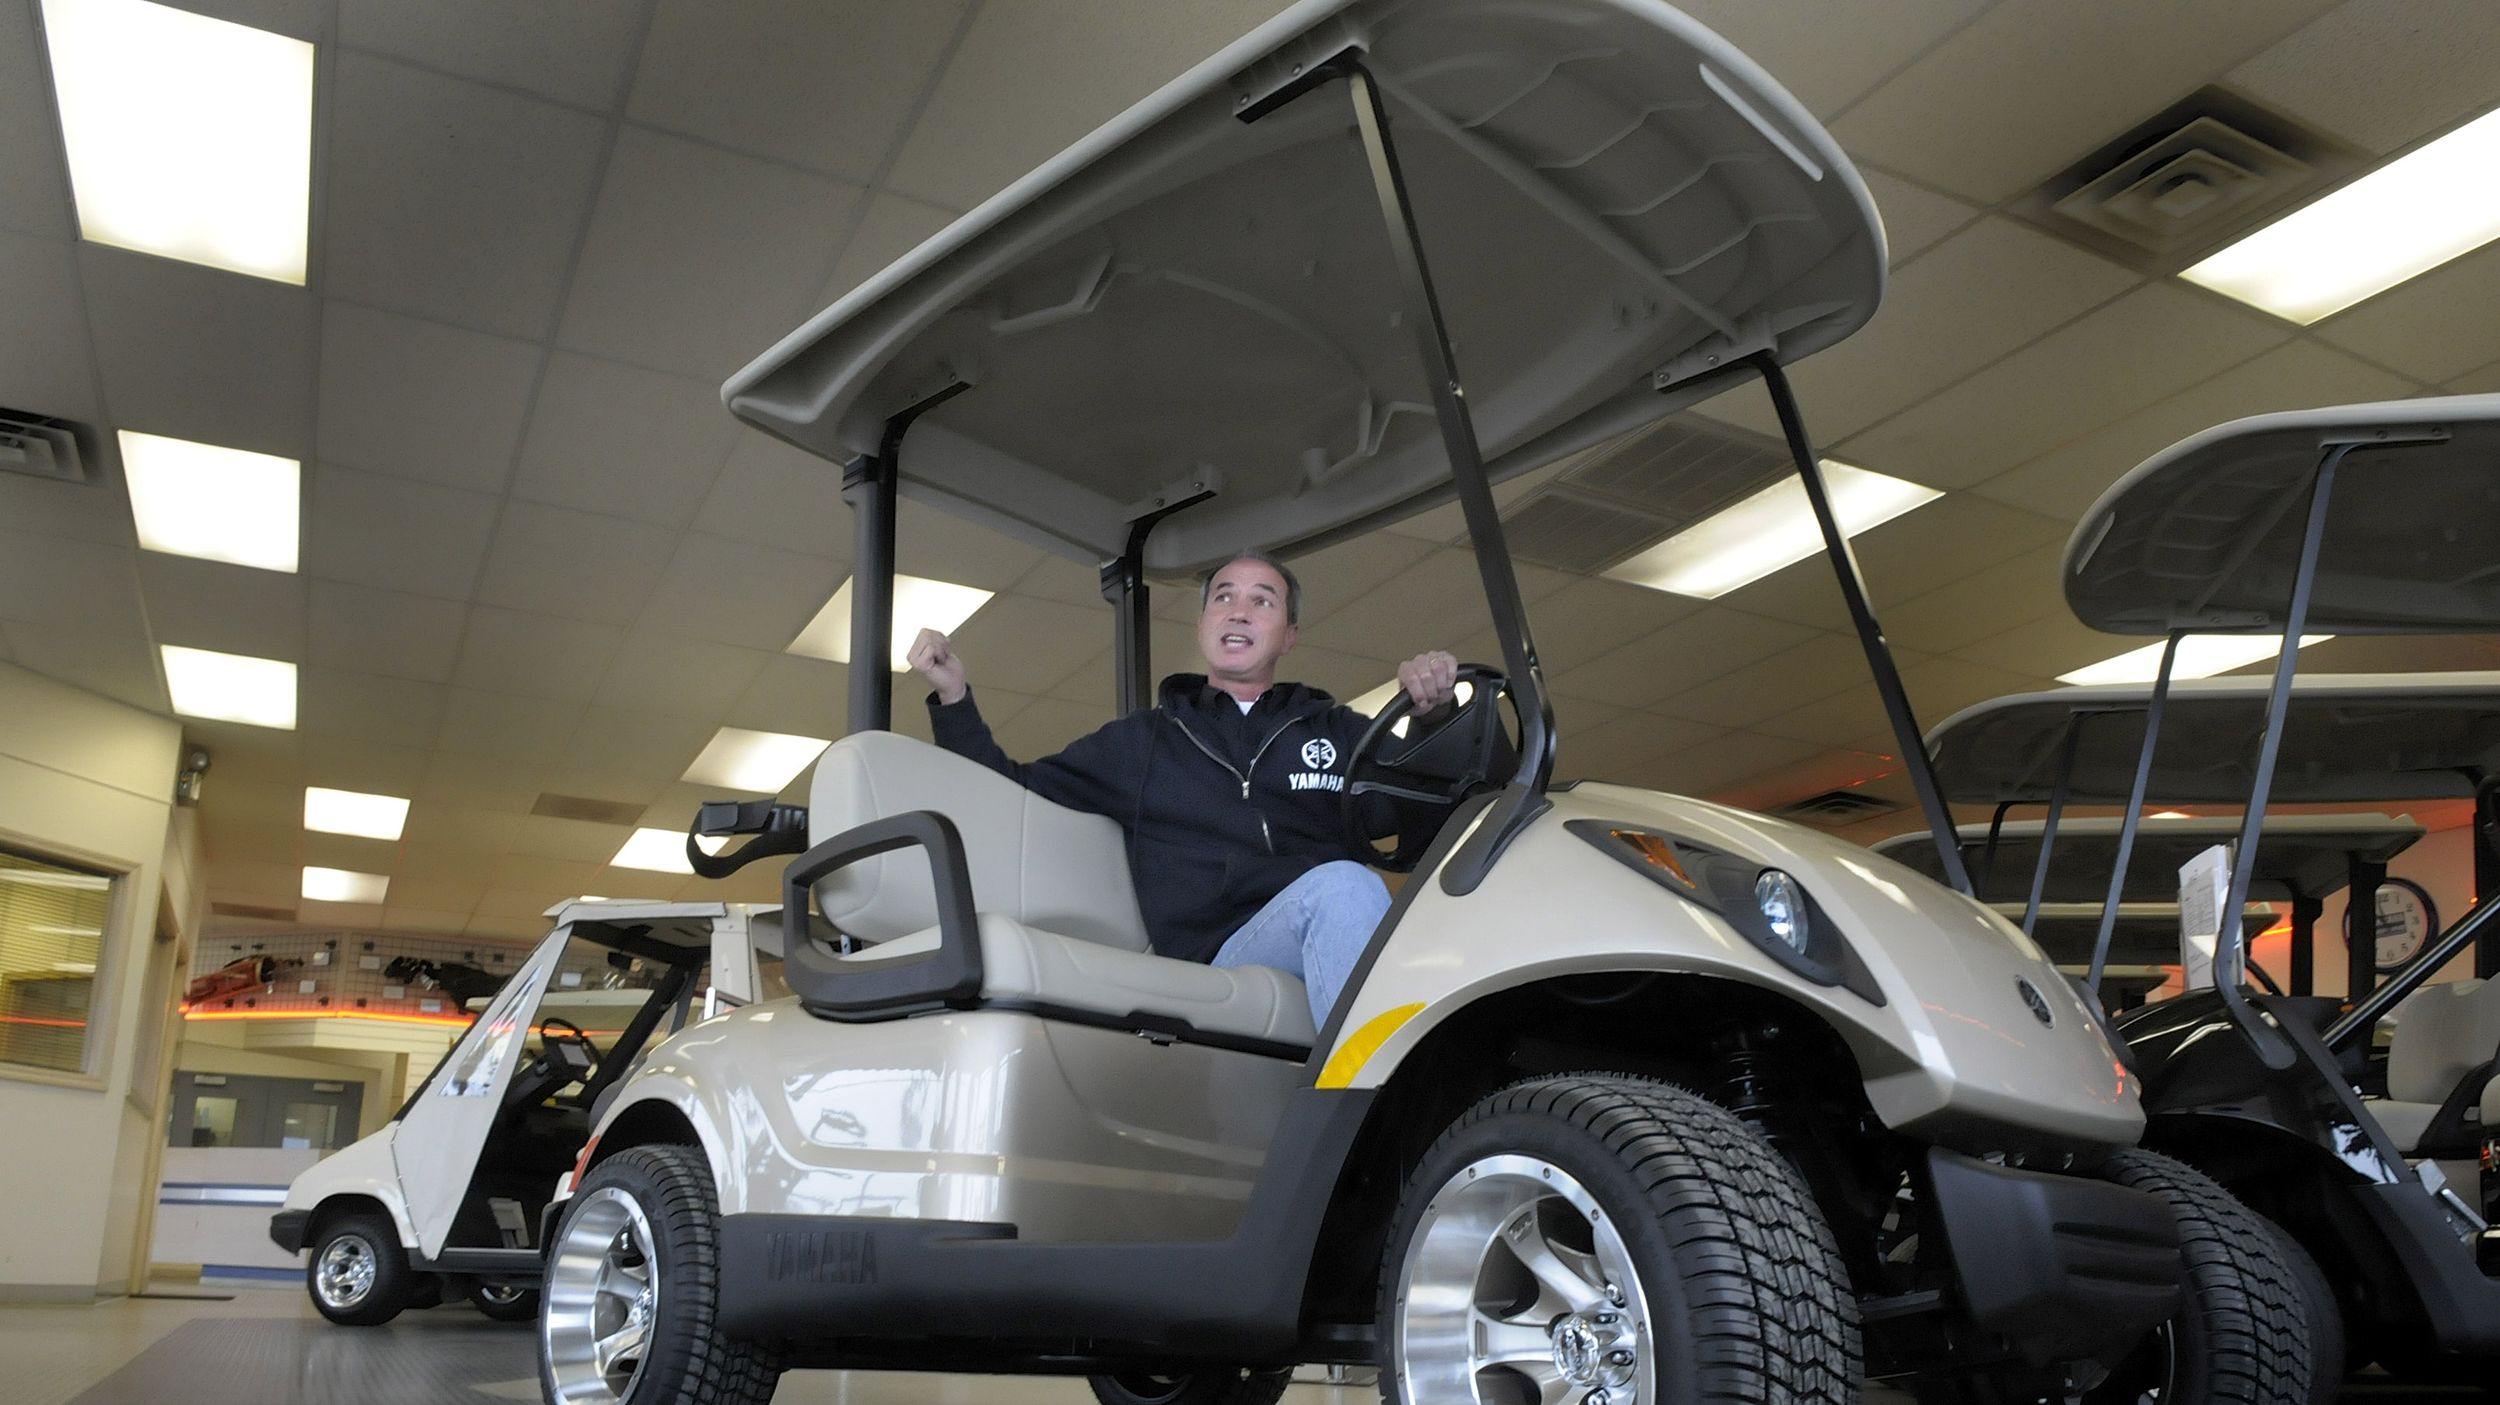 31+ Are golf carts street legal in washington state viral